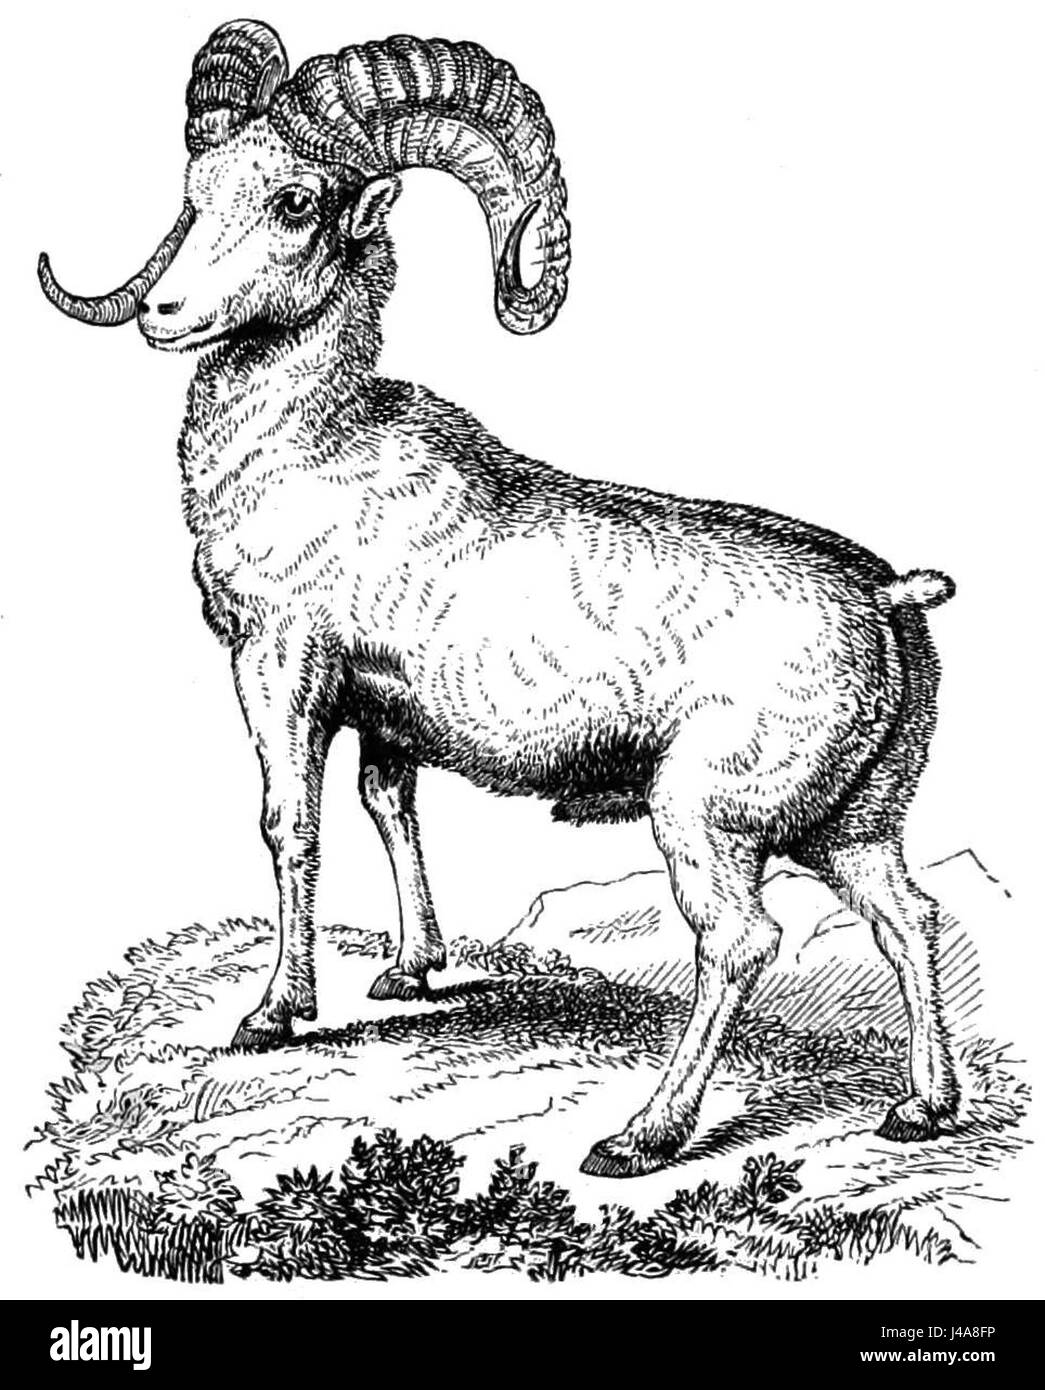 PSM V10 D707 The mountain sheep - Stock Image